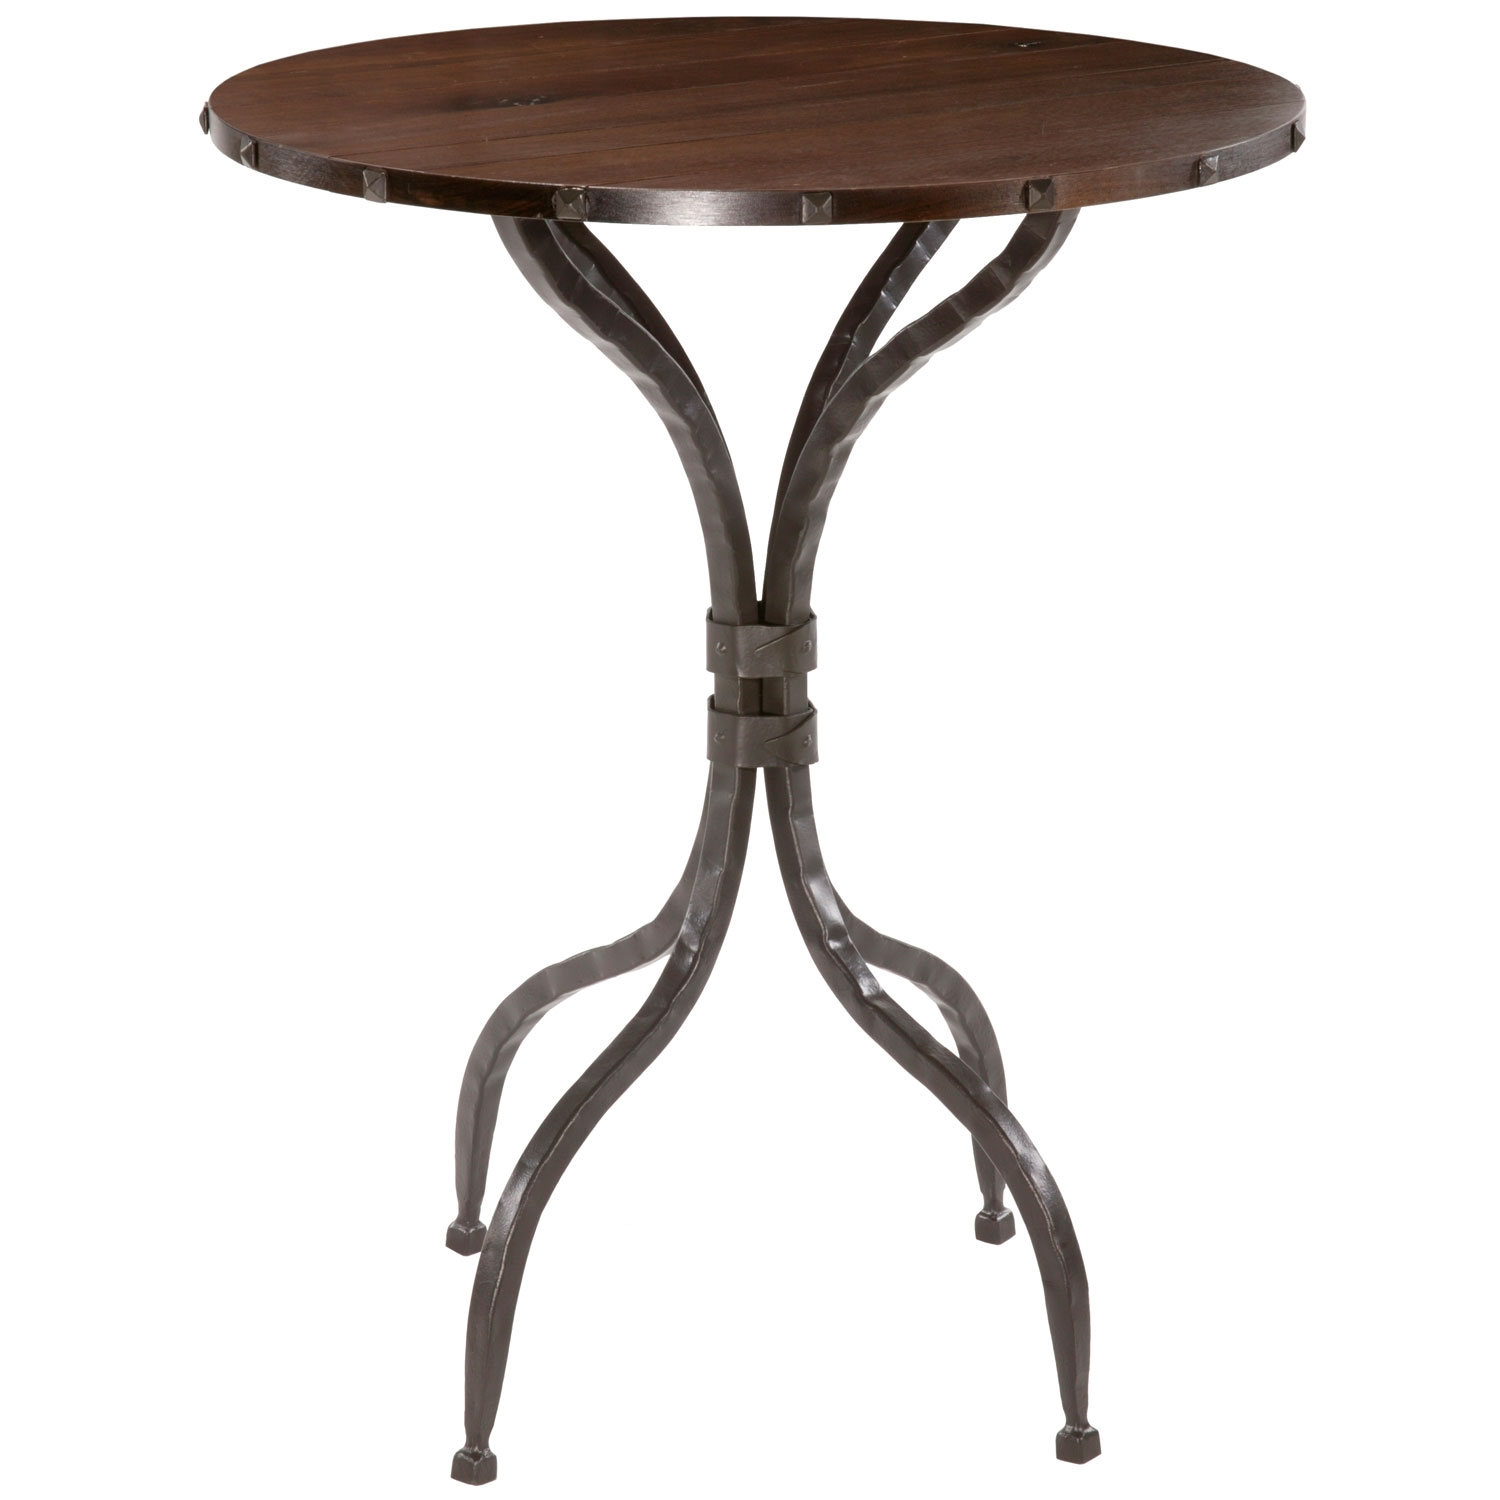 Phenomenal Wrought Iron Forest Hill Counter Height Table 42In Round Top Download Free Architecture Designs Embacsunscenecom